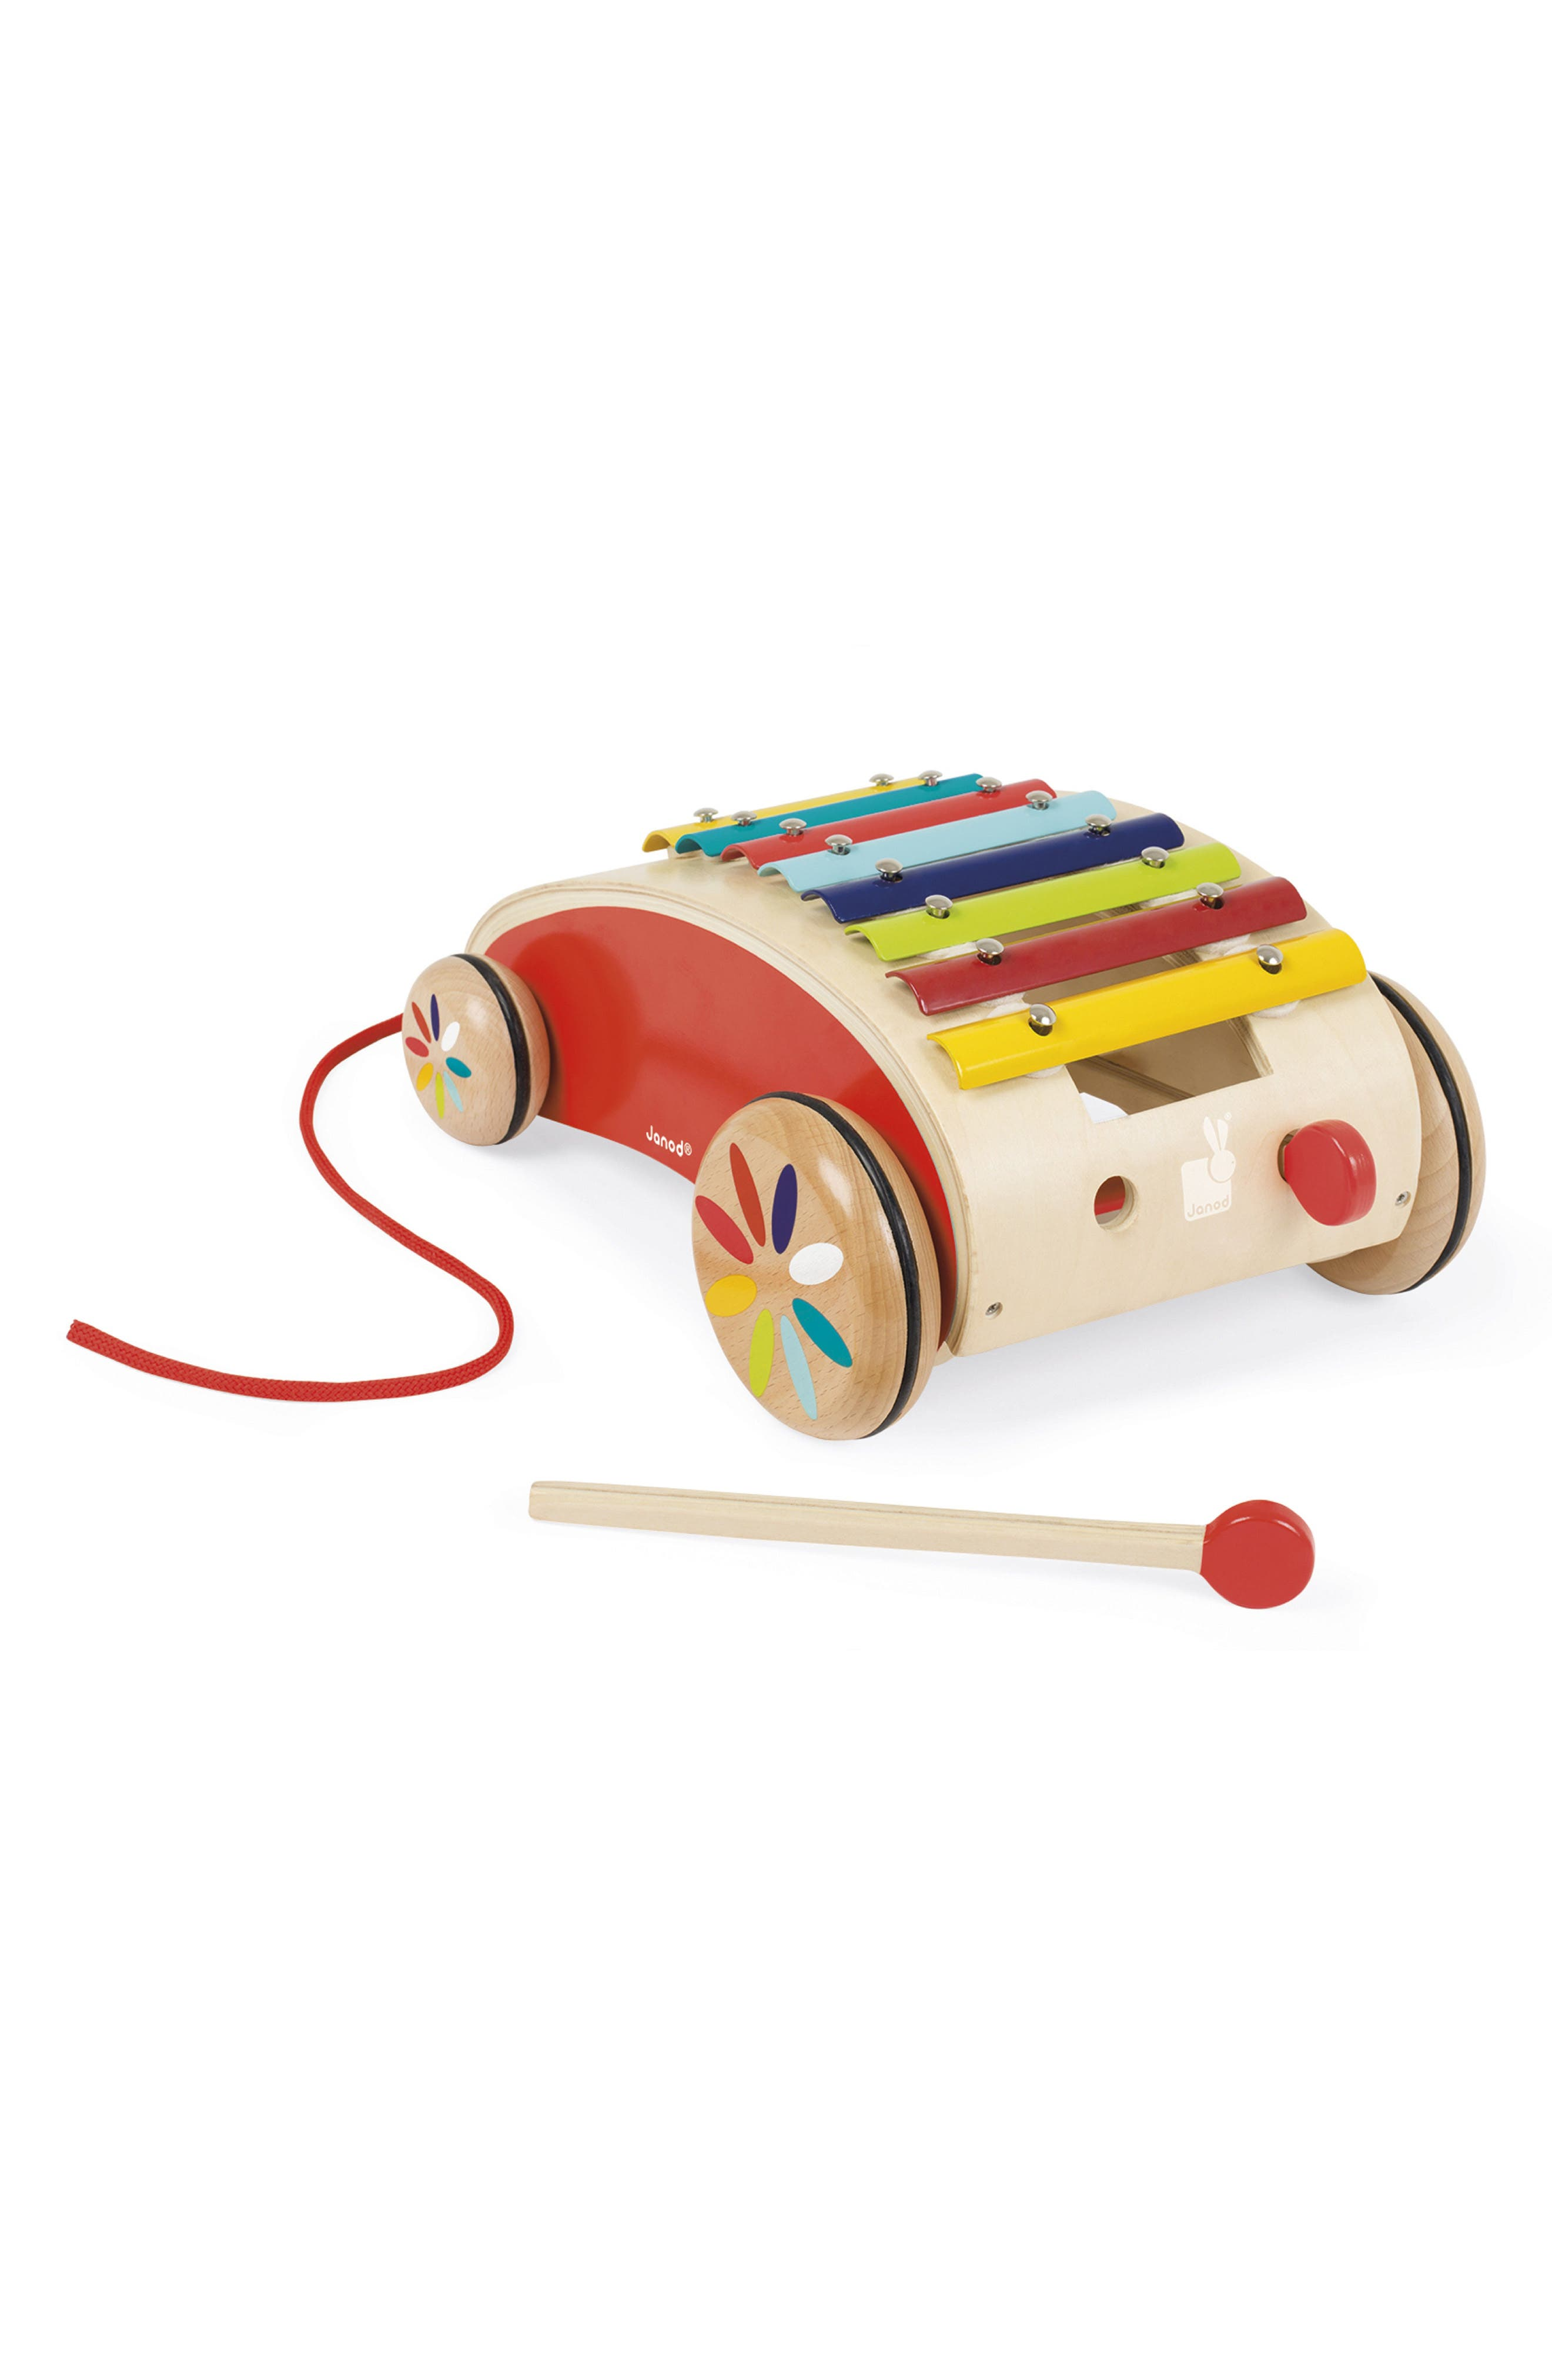 Janod Xylophone Roller Toy